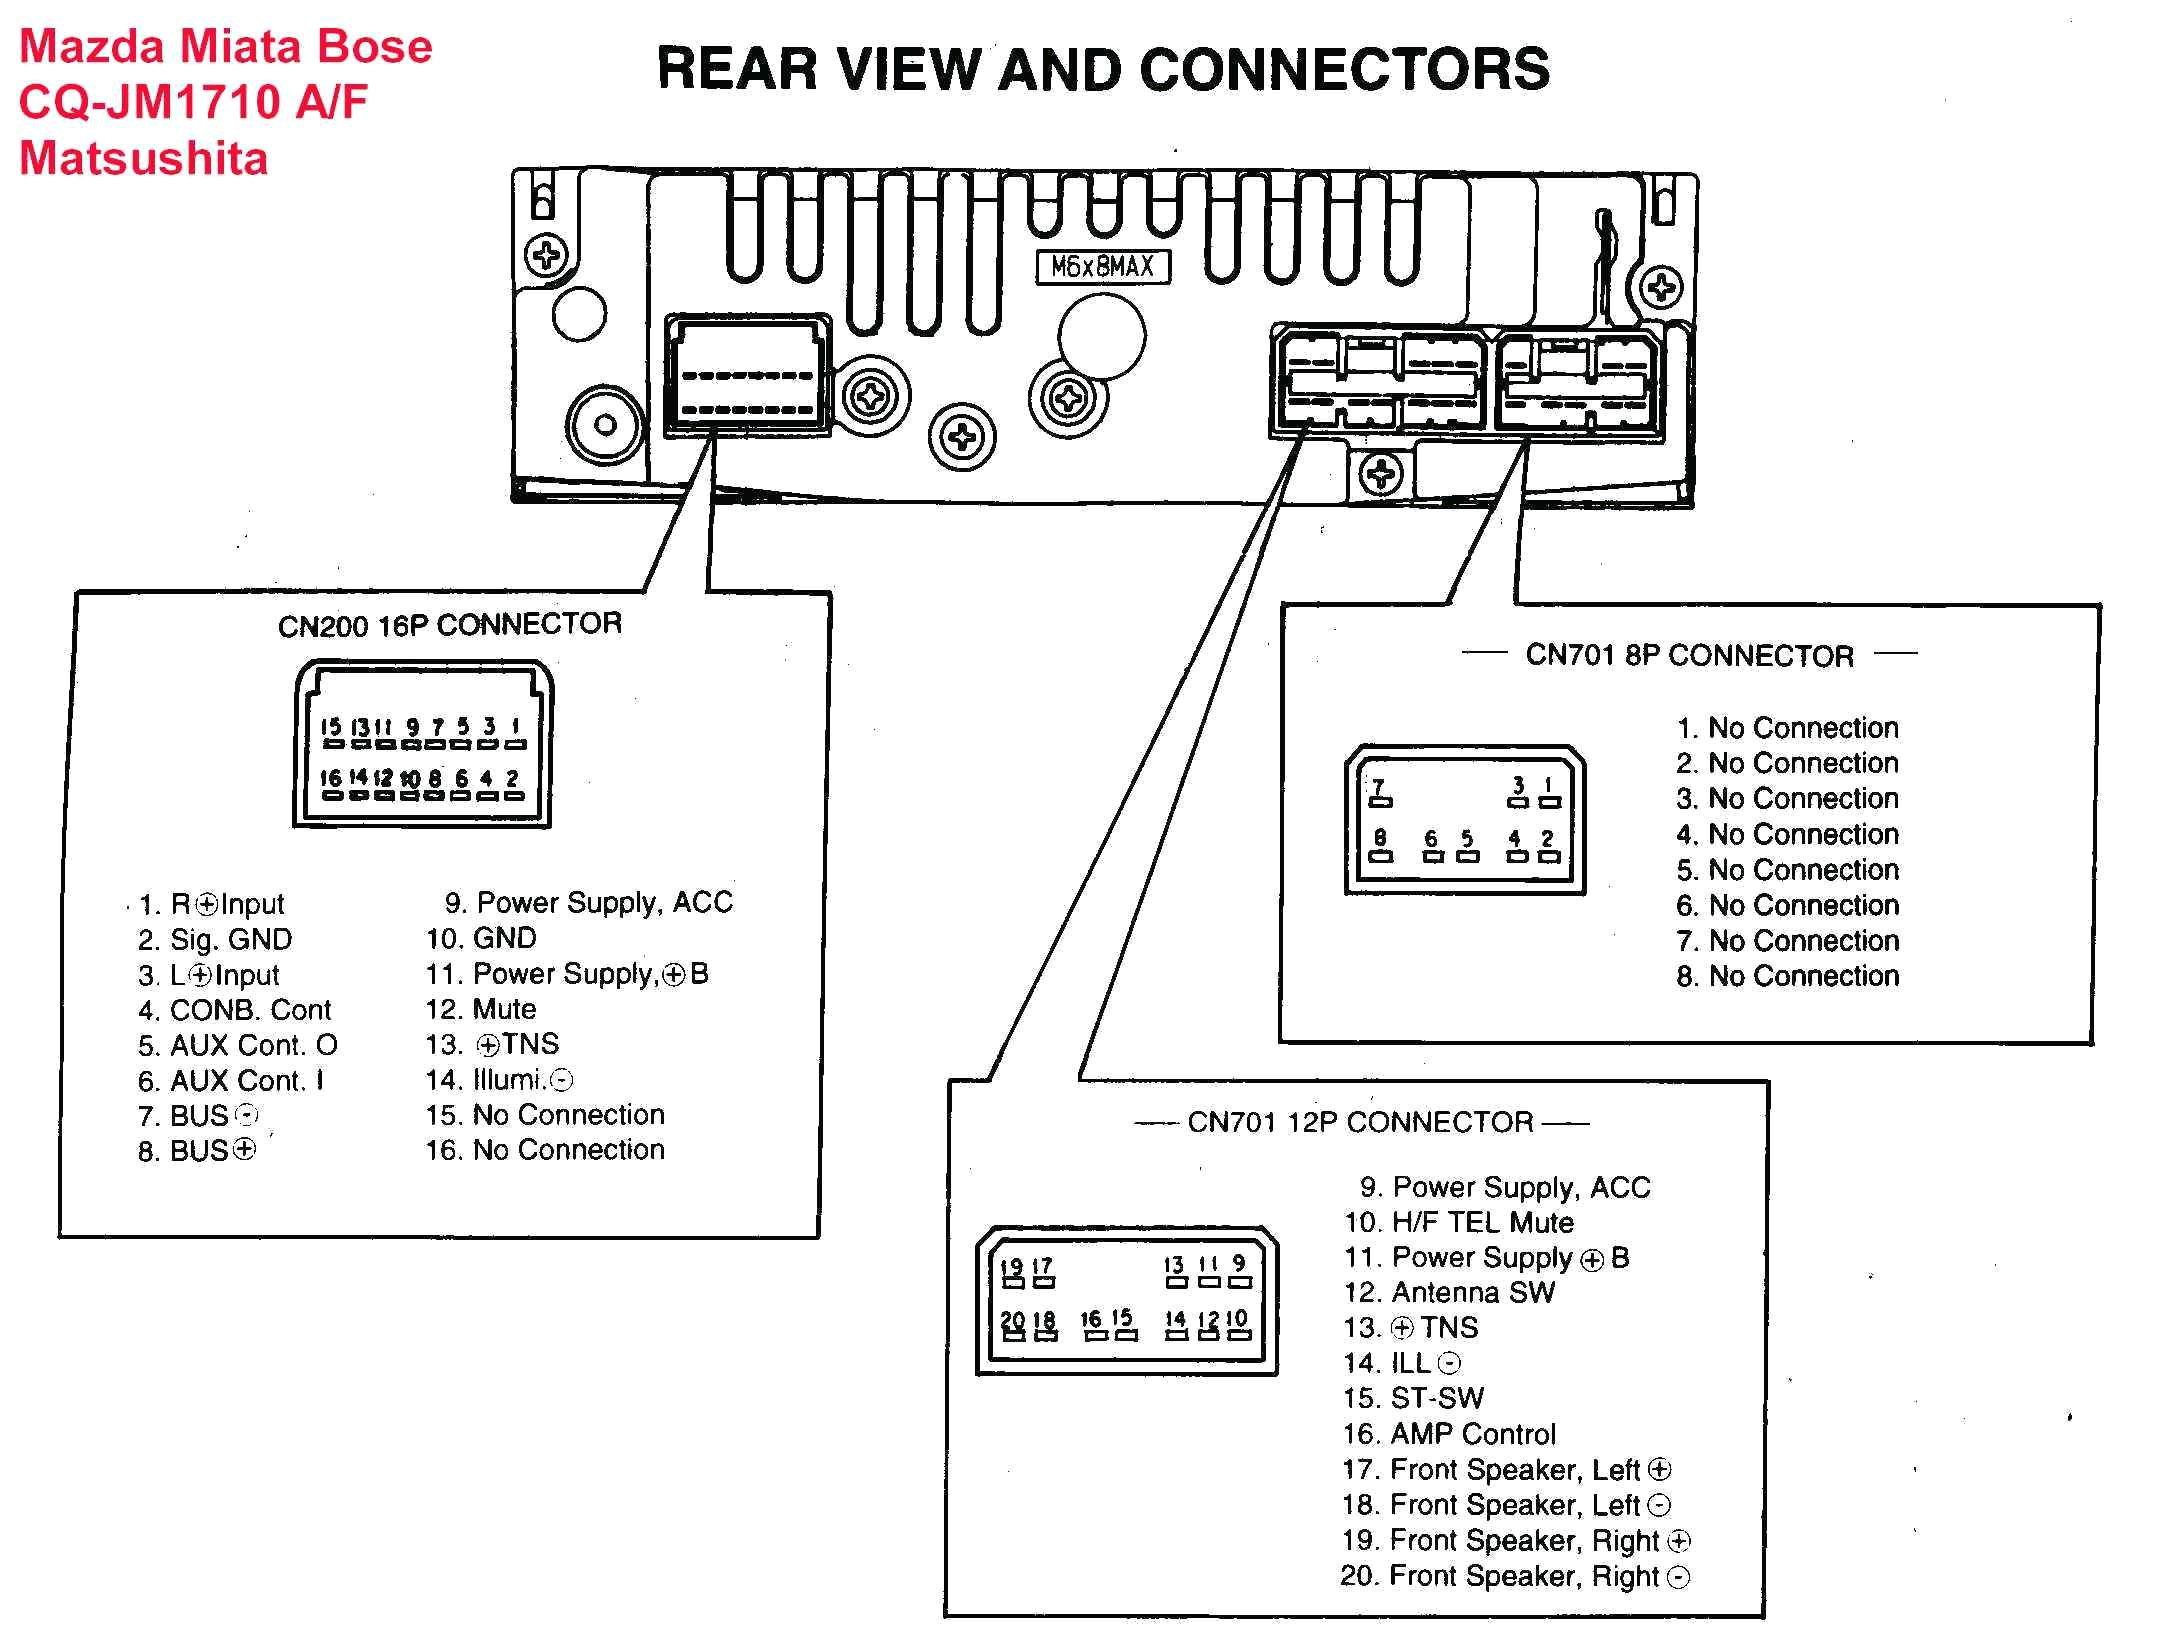 pioneer deh p3900mp wiring diagram wiring diagram amepioneer deh p3900mp wiring harness wiring diagram article review